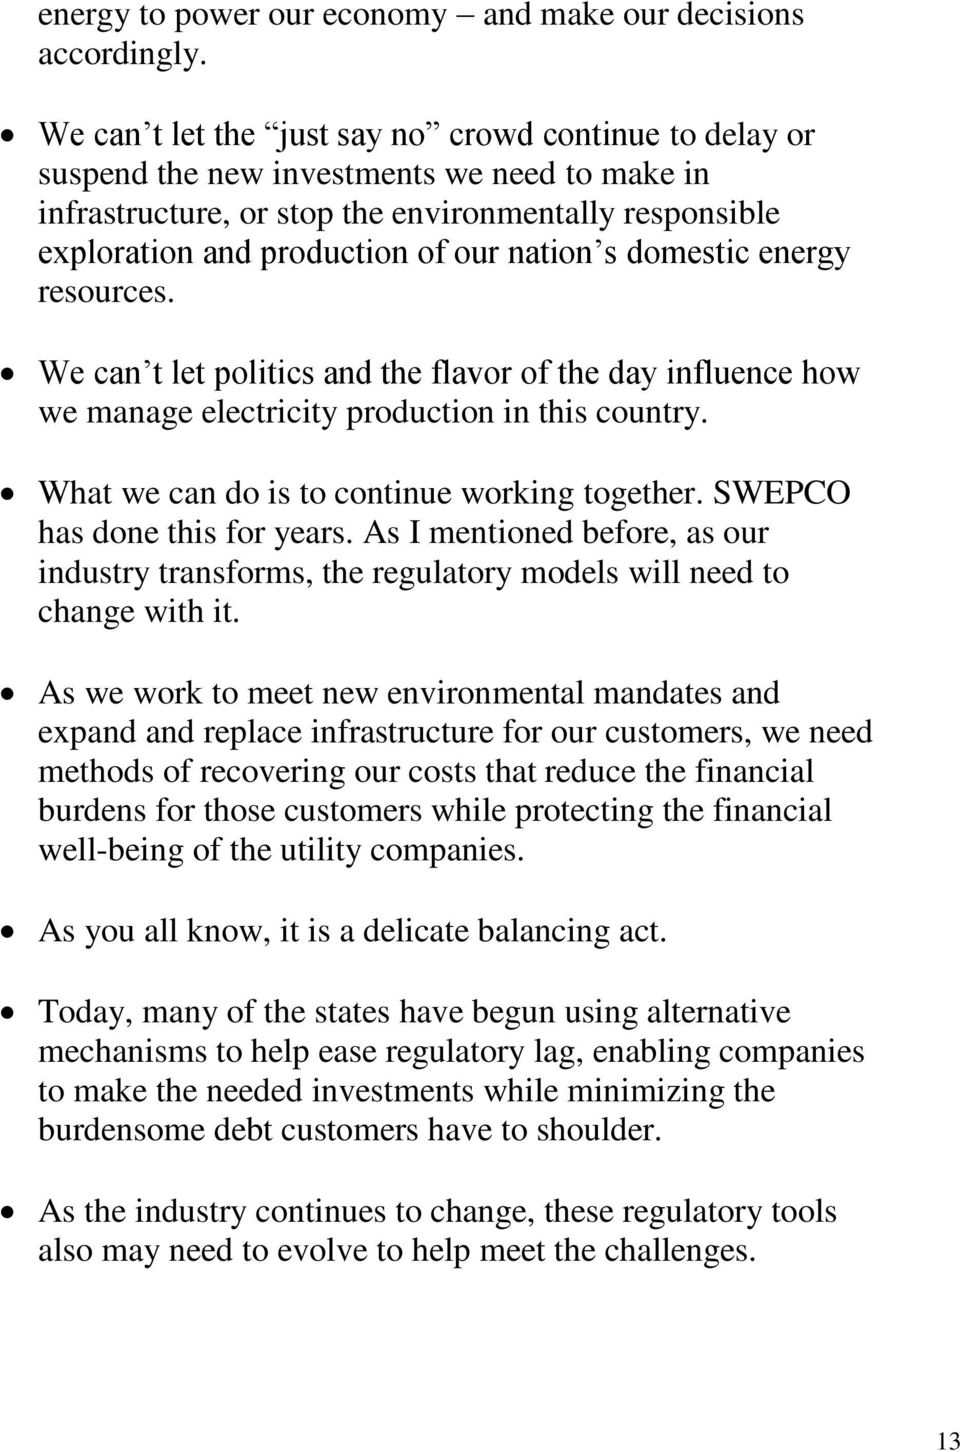 s domestic energy resources. We can t let politics and the flavor of the day influence how we manage electricity production in this country. What we can do is to continue working together.